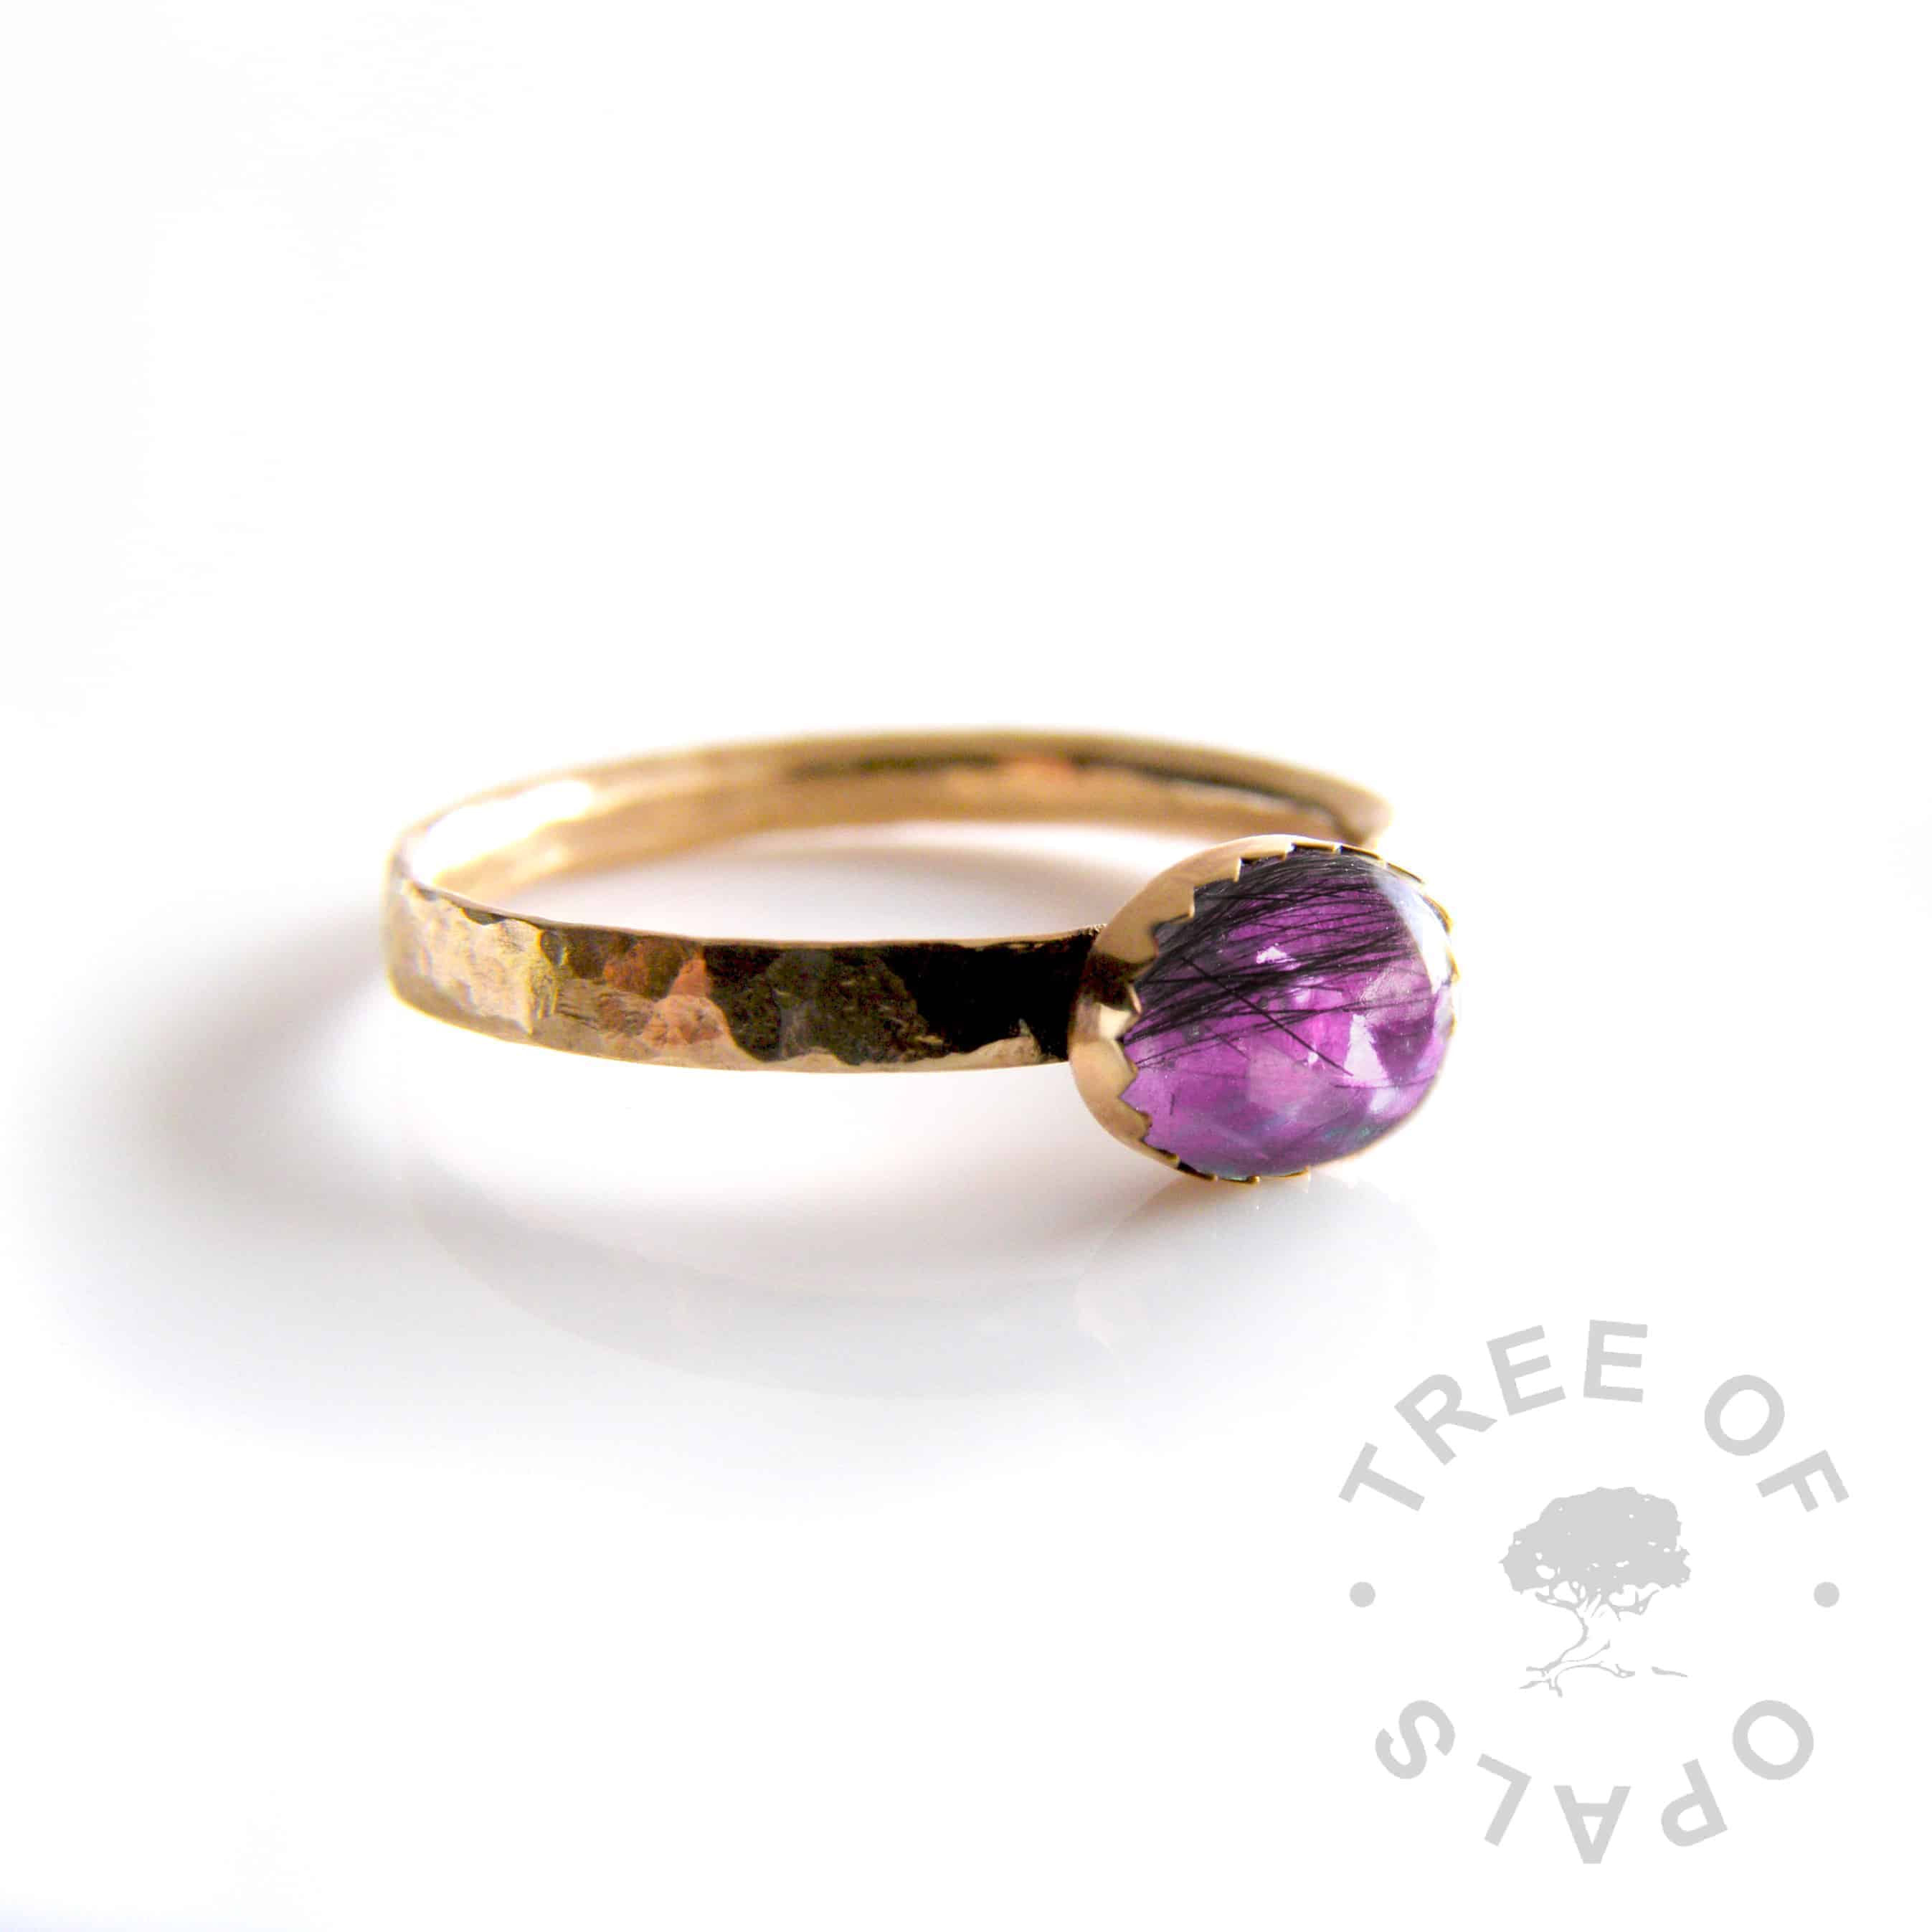 solid 14ct yellow gold lock of hair ring with purple opalescent flakes (mockup)